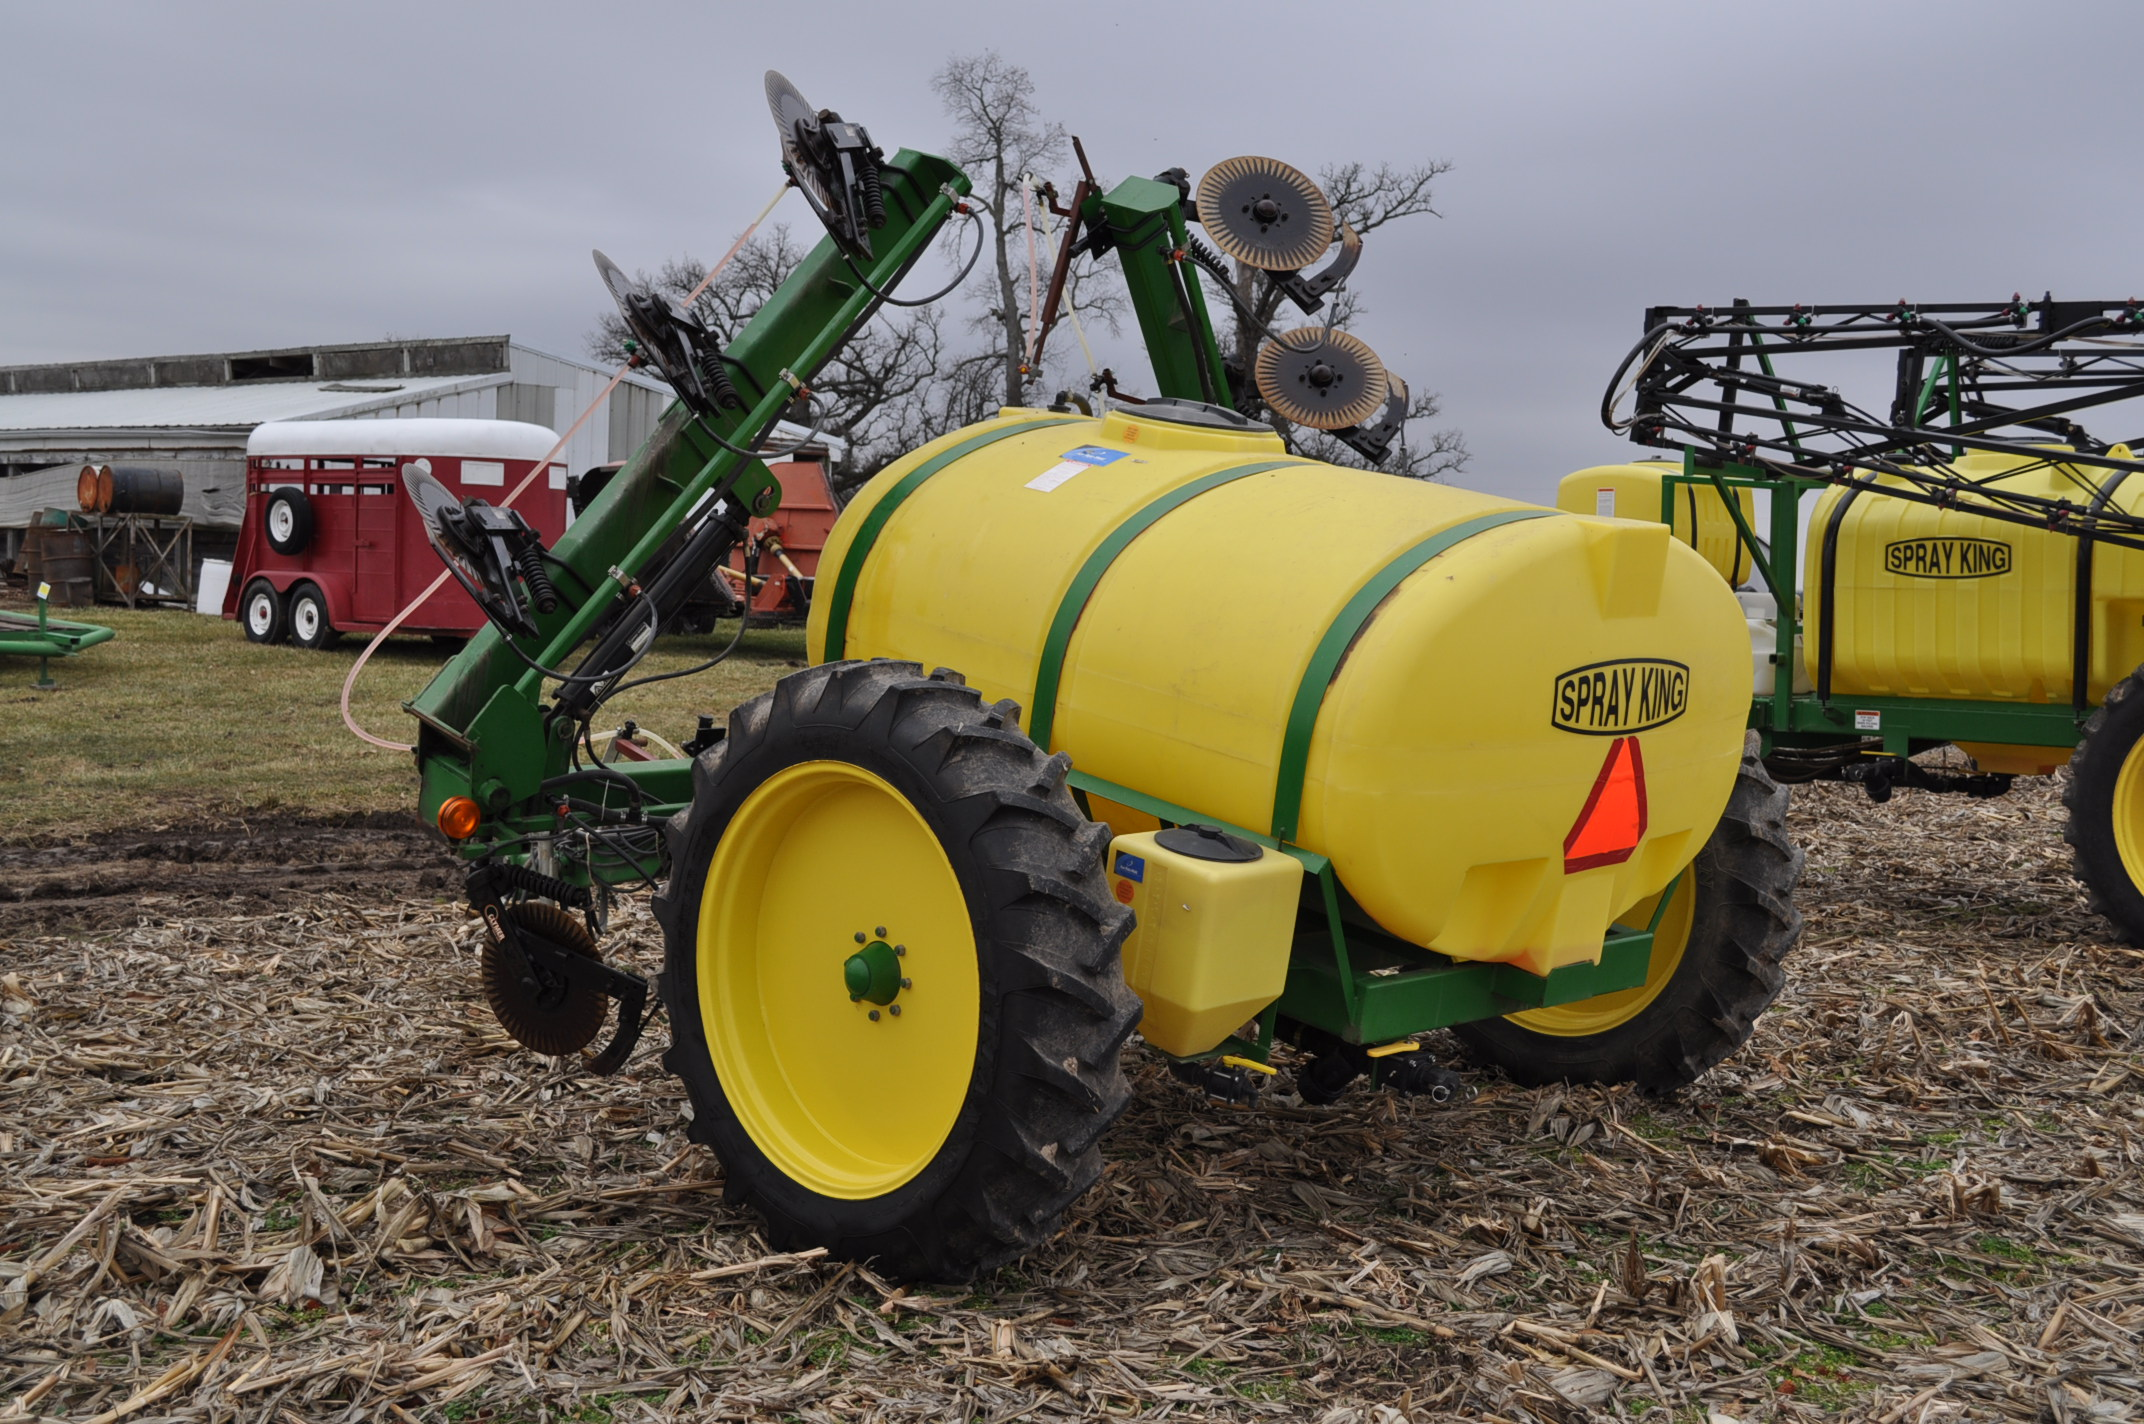 Spray King 28% applicator, 11 coulters w/ knives, 850 poly tank, SS hyd pump, spot spray nozzles - Image 2 of 15